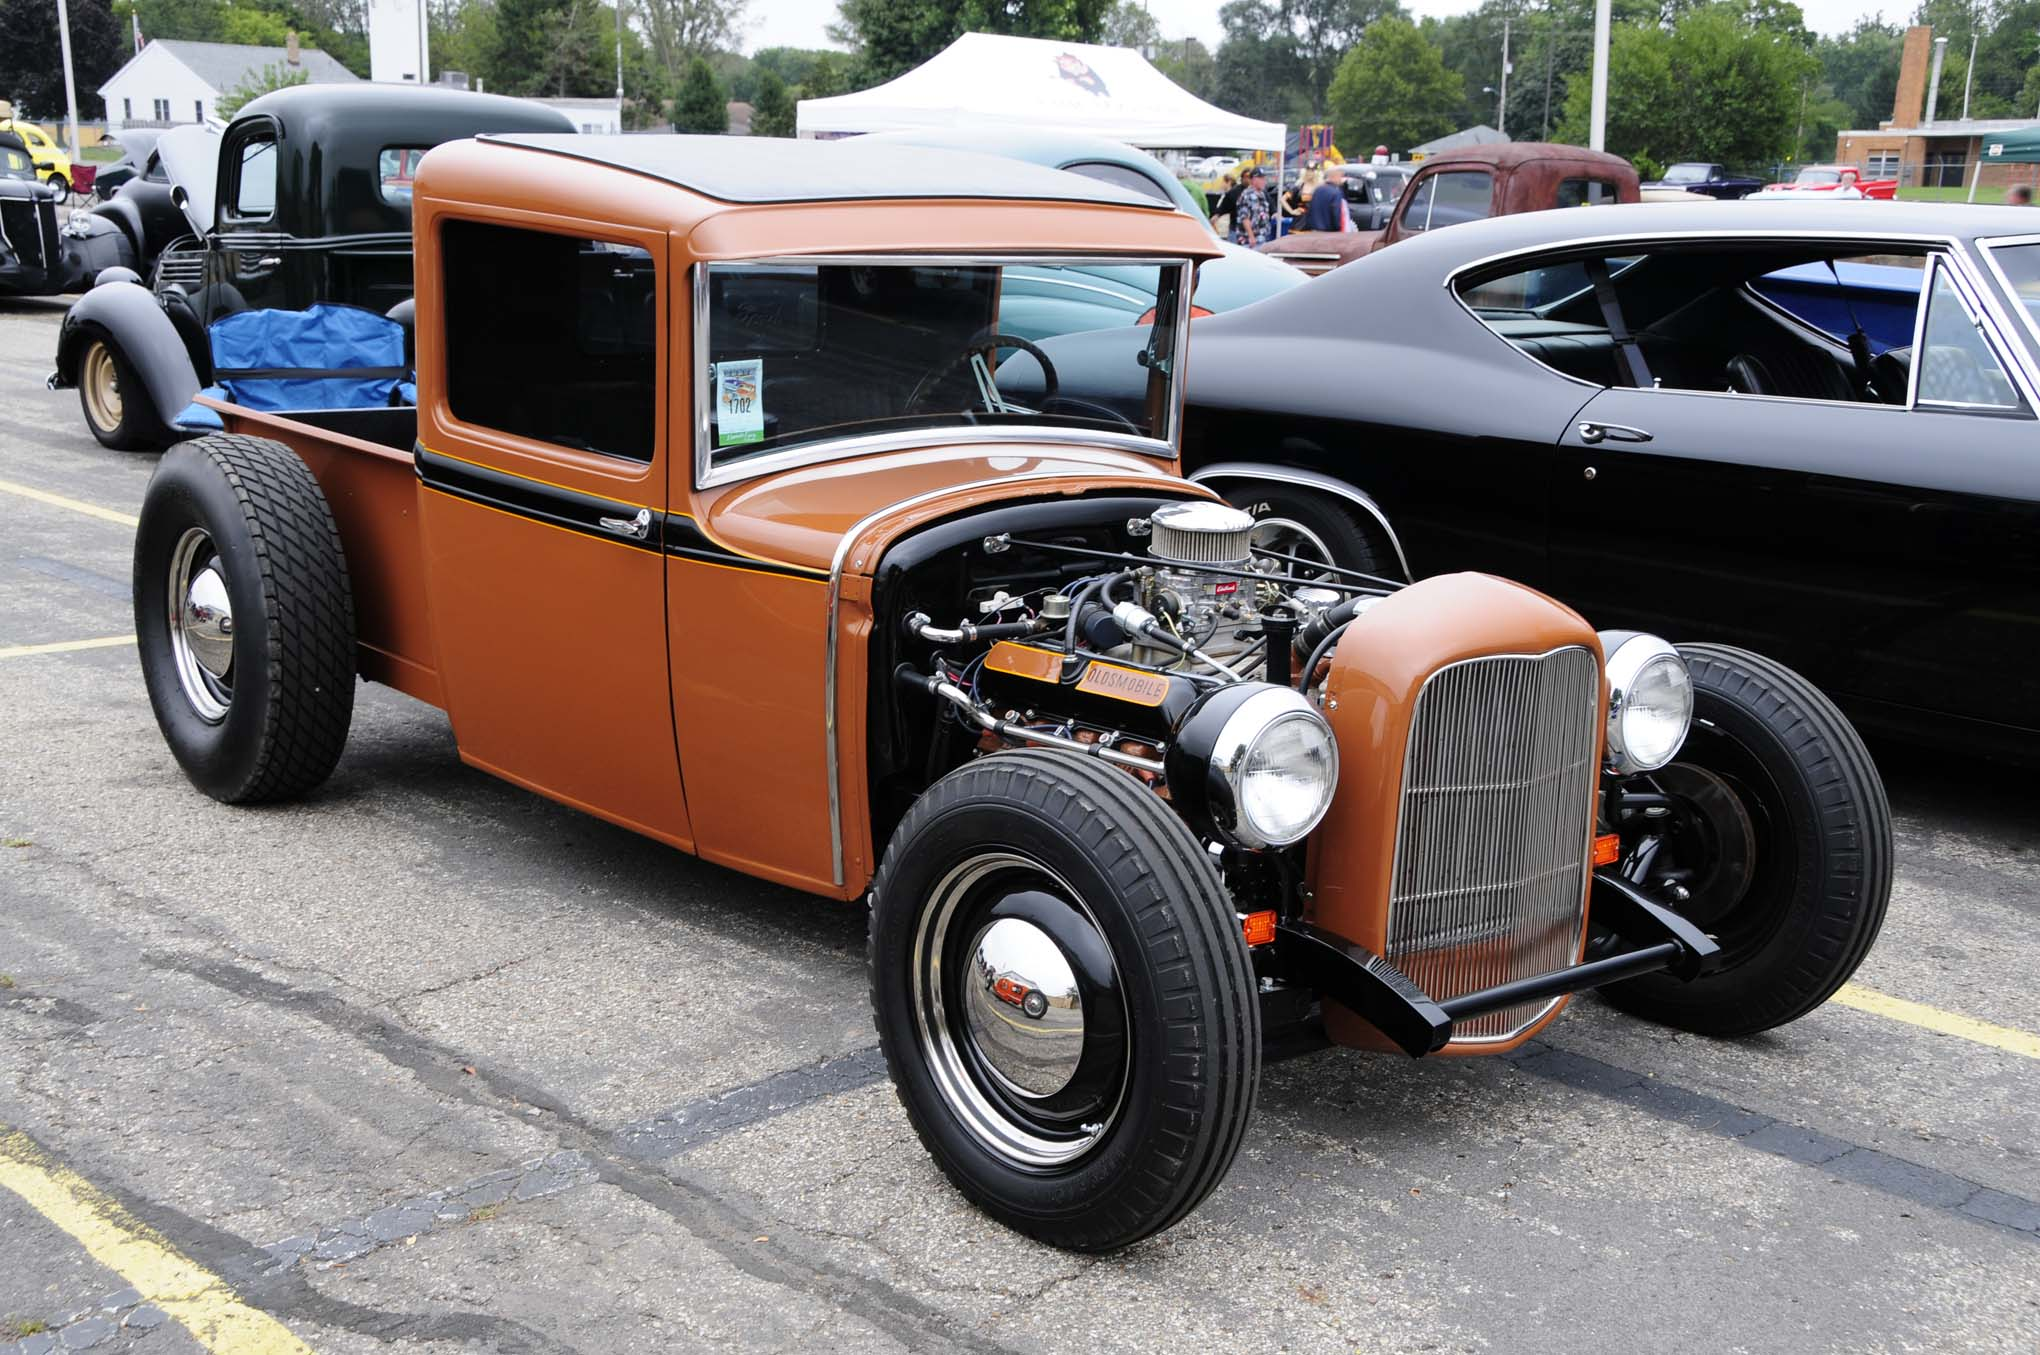 We really dig Bob Oland's 1931 Ford hauler with its channeled body, chopped Deuce grille, Oldsmobile V-8 power, and perfect rim and tire combination.